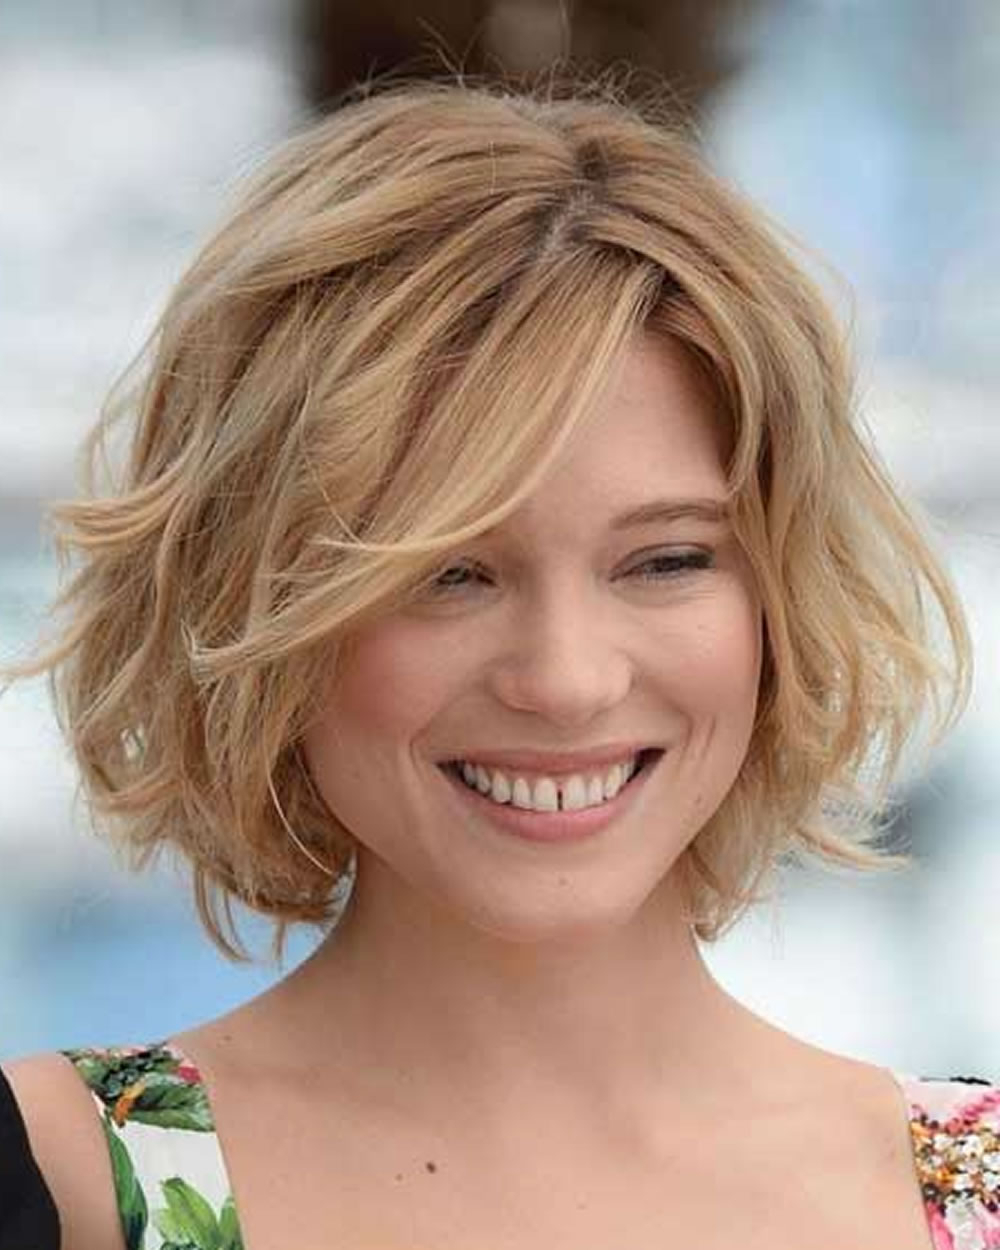 Curly & Wavy Short Hairstyles And Haircuts For Ladies 2018 2019 With Regard To Short Haircuts For Wavy Hair And Round Faces (View 9 of 25)